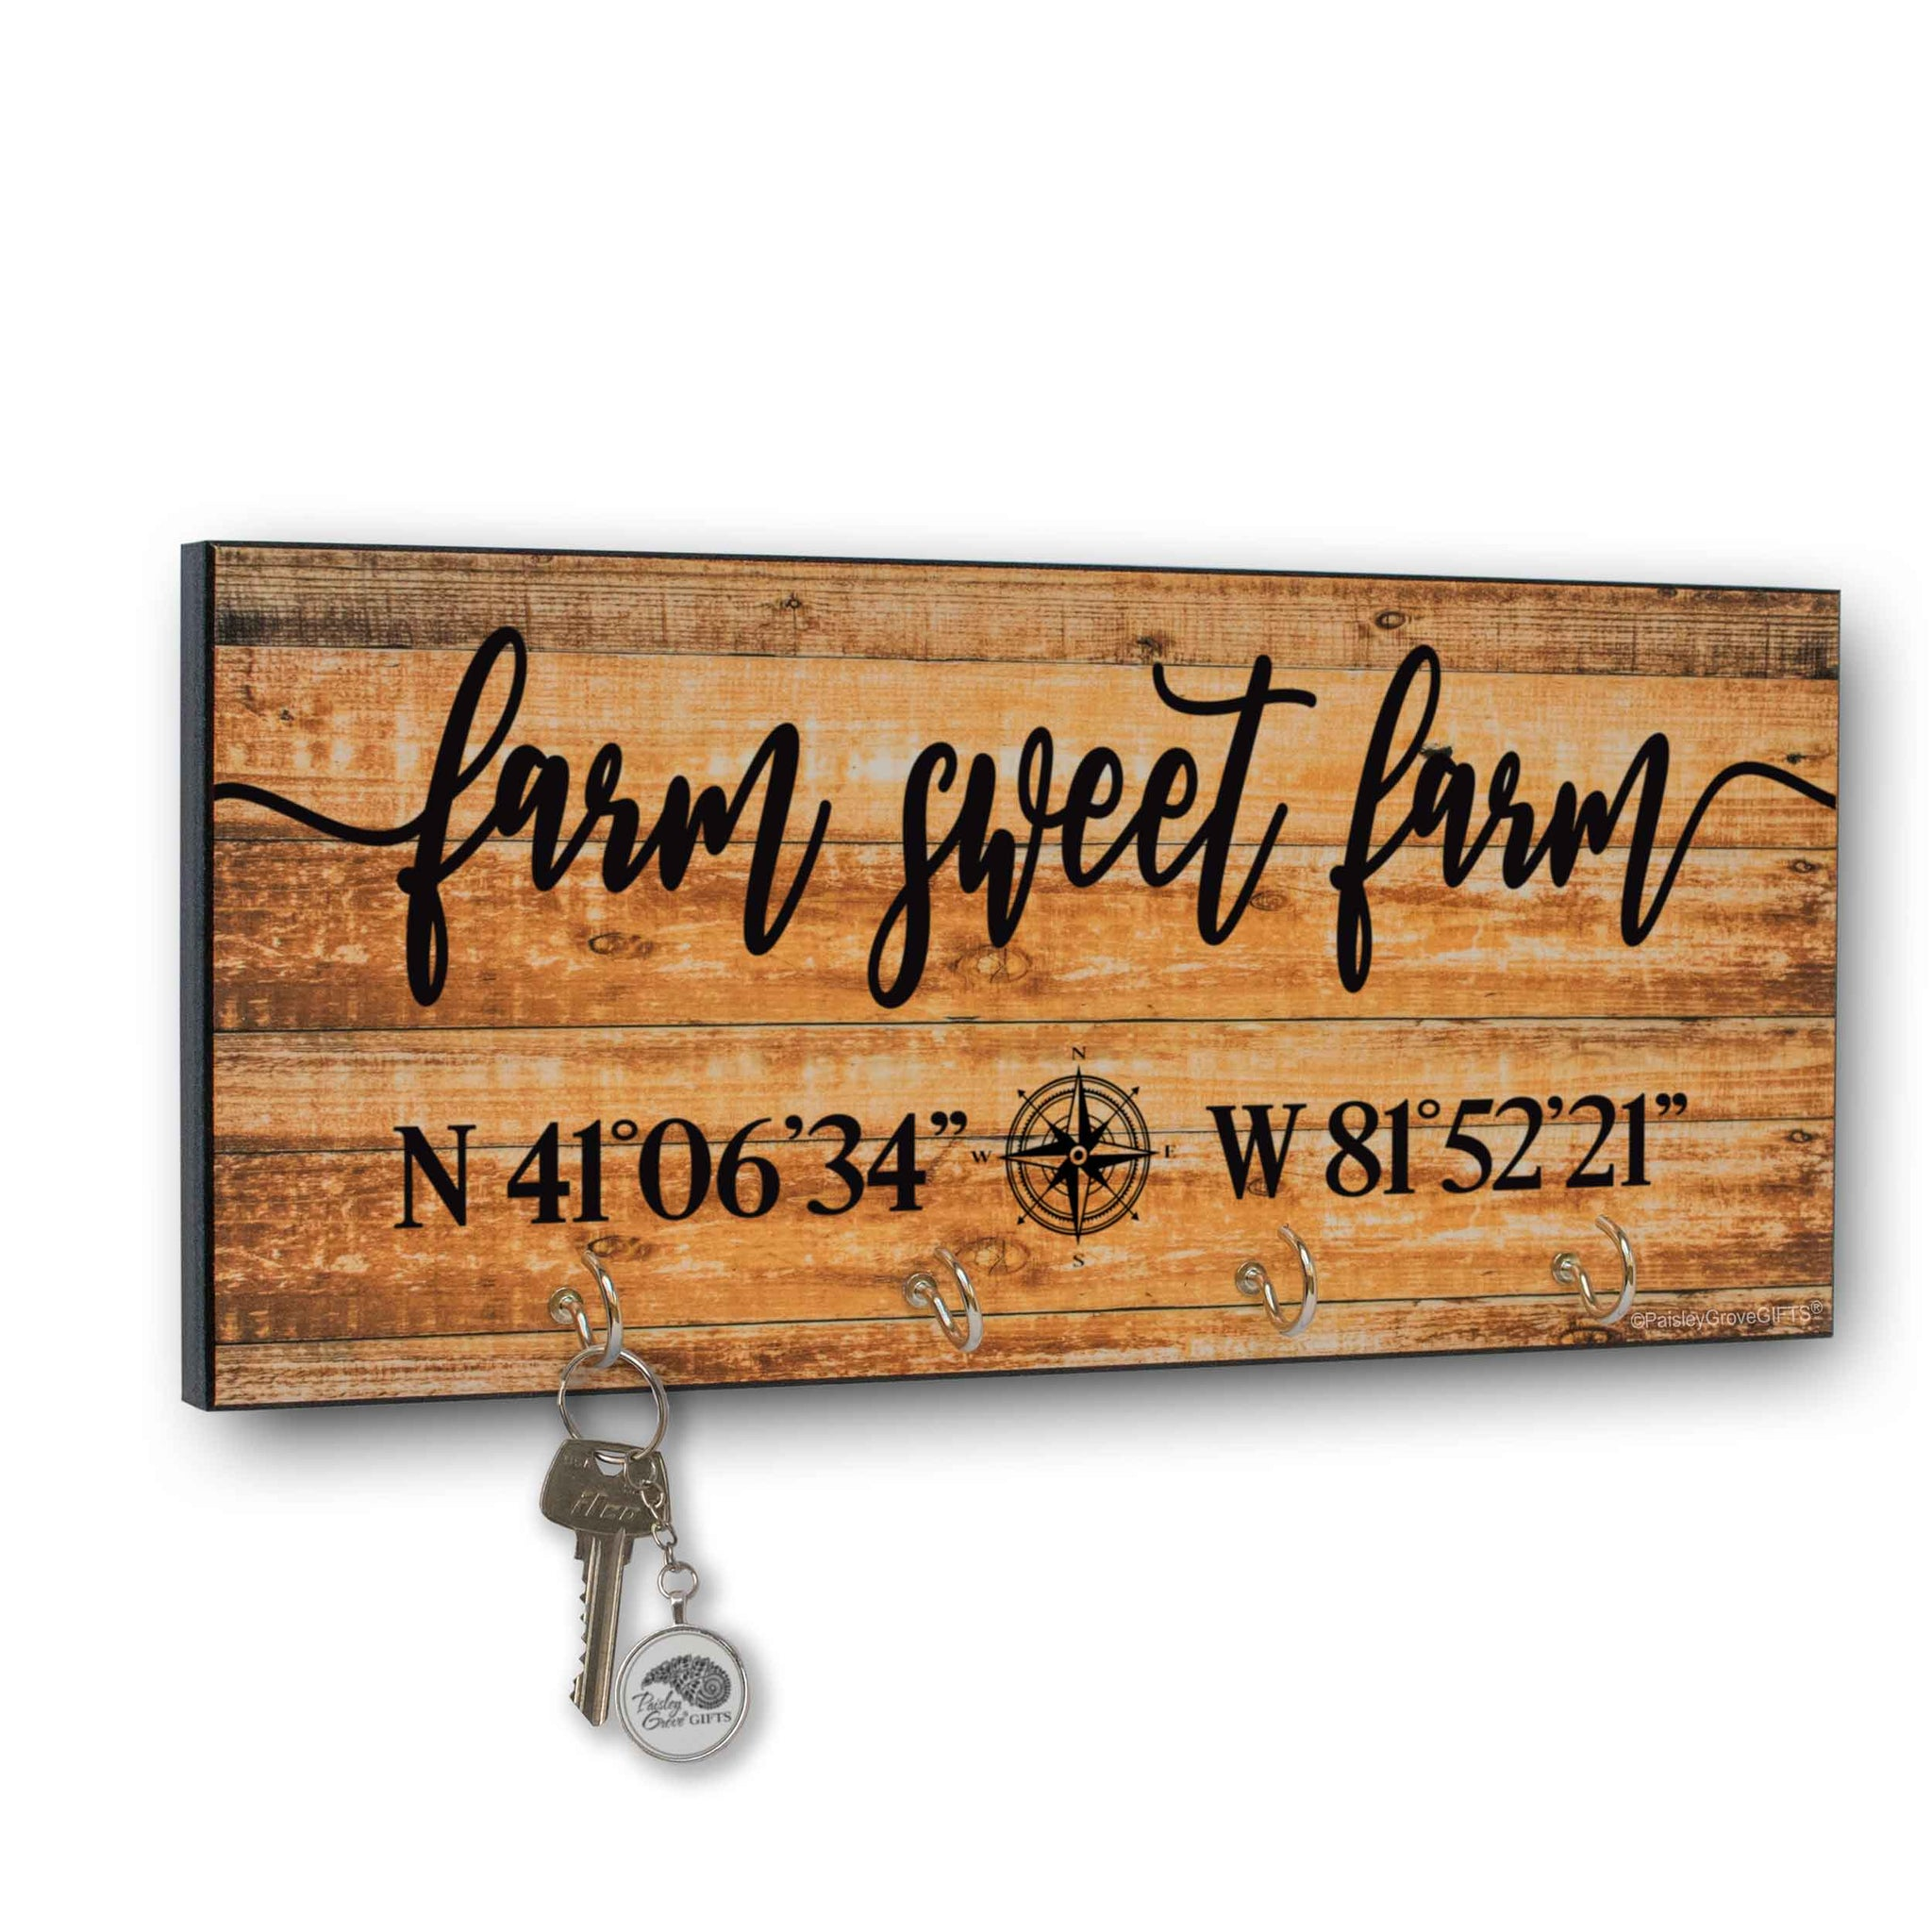 Farm Sweet Farm Key Holder for Wall with Coordinates Sign | S303b